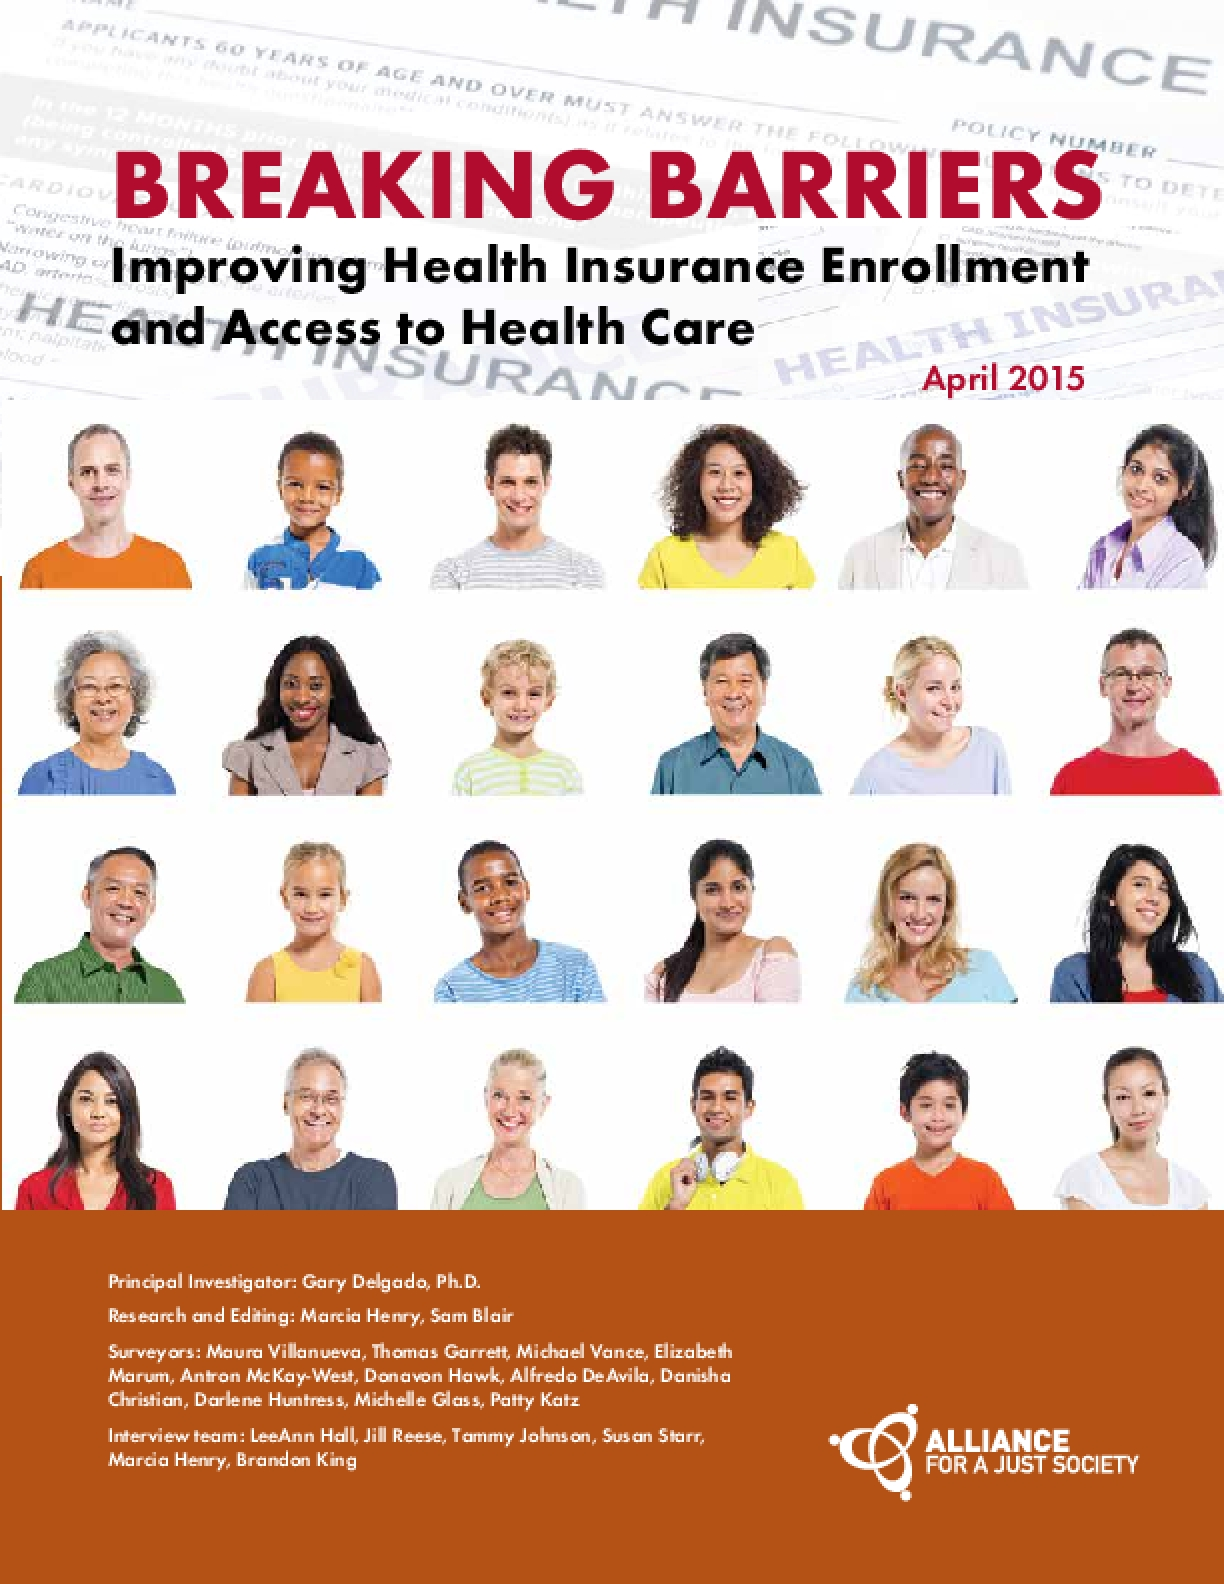 Breaking Barriers: Improving Health Insurance Enrollment and Access to Health Care